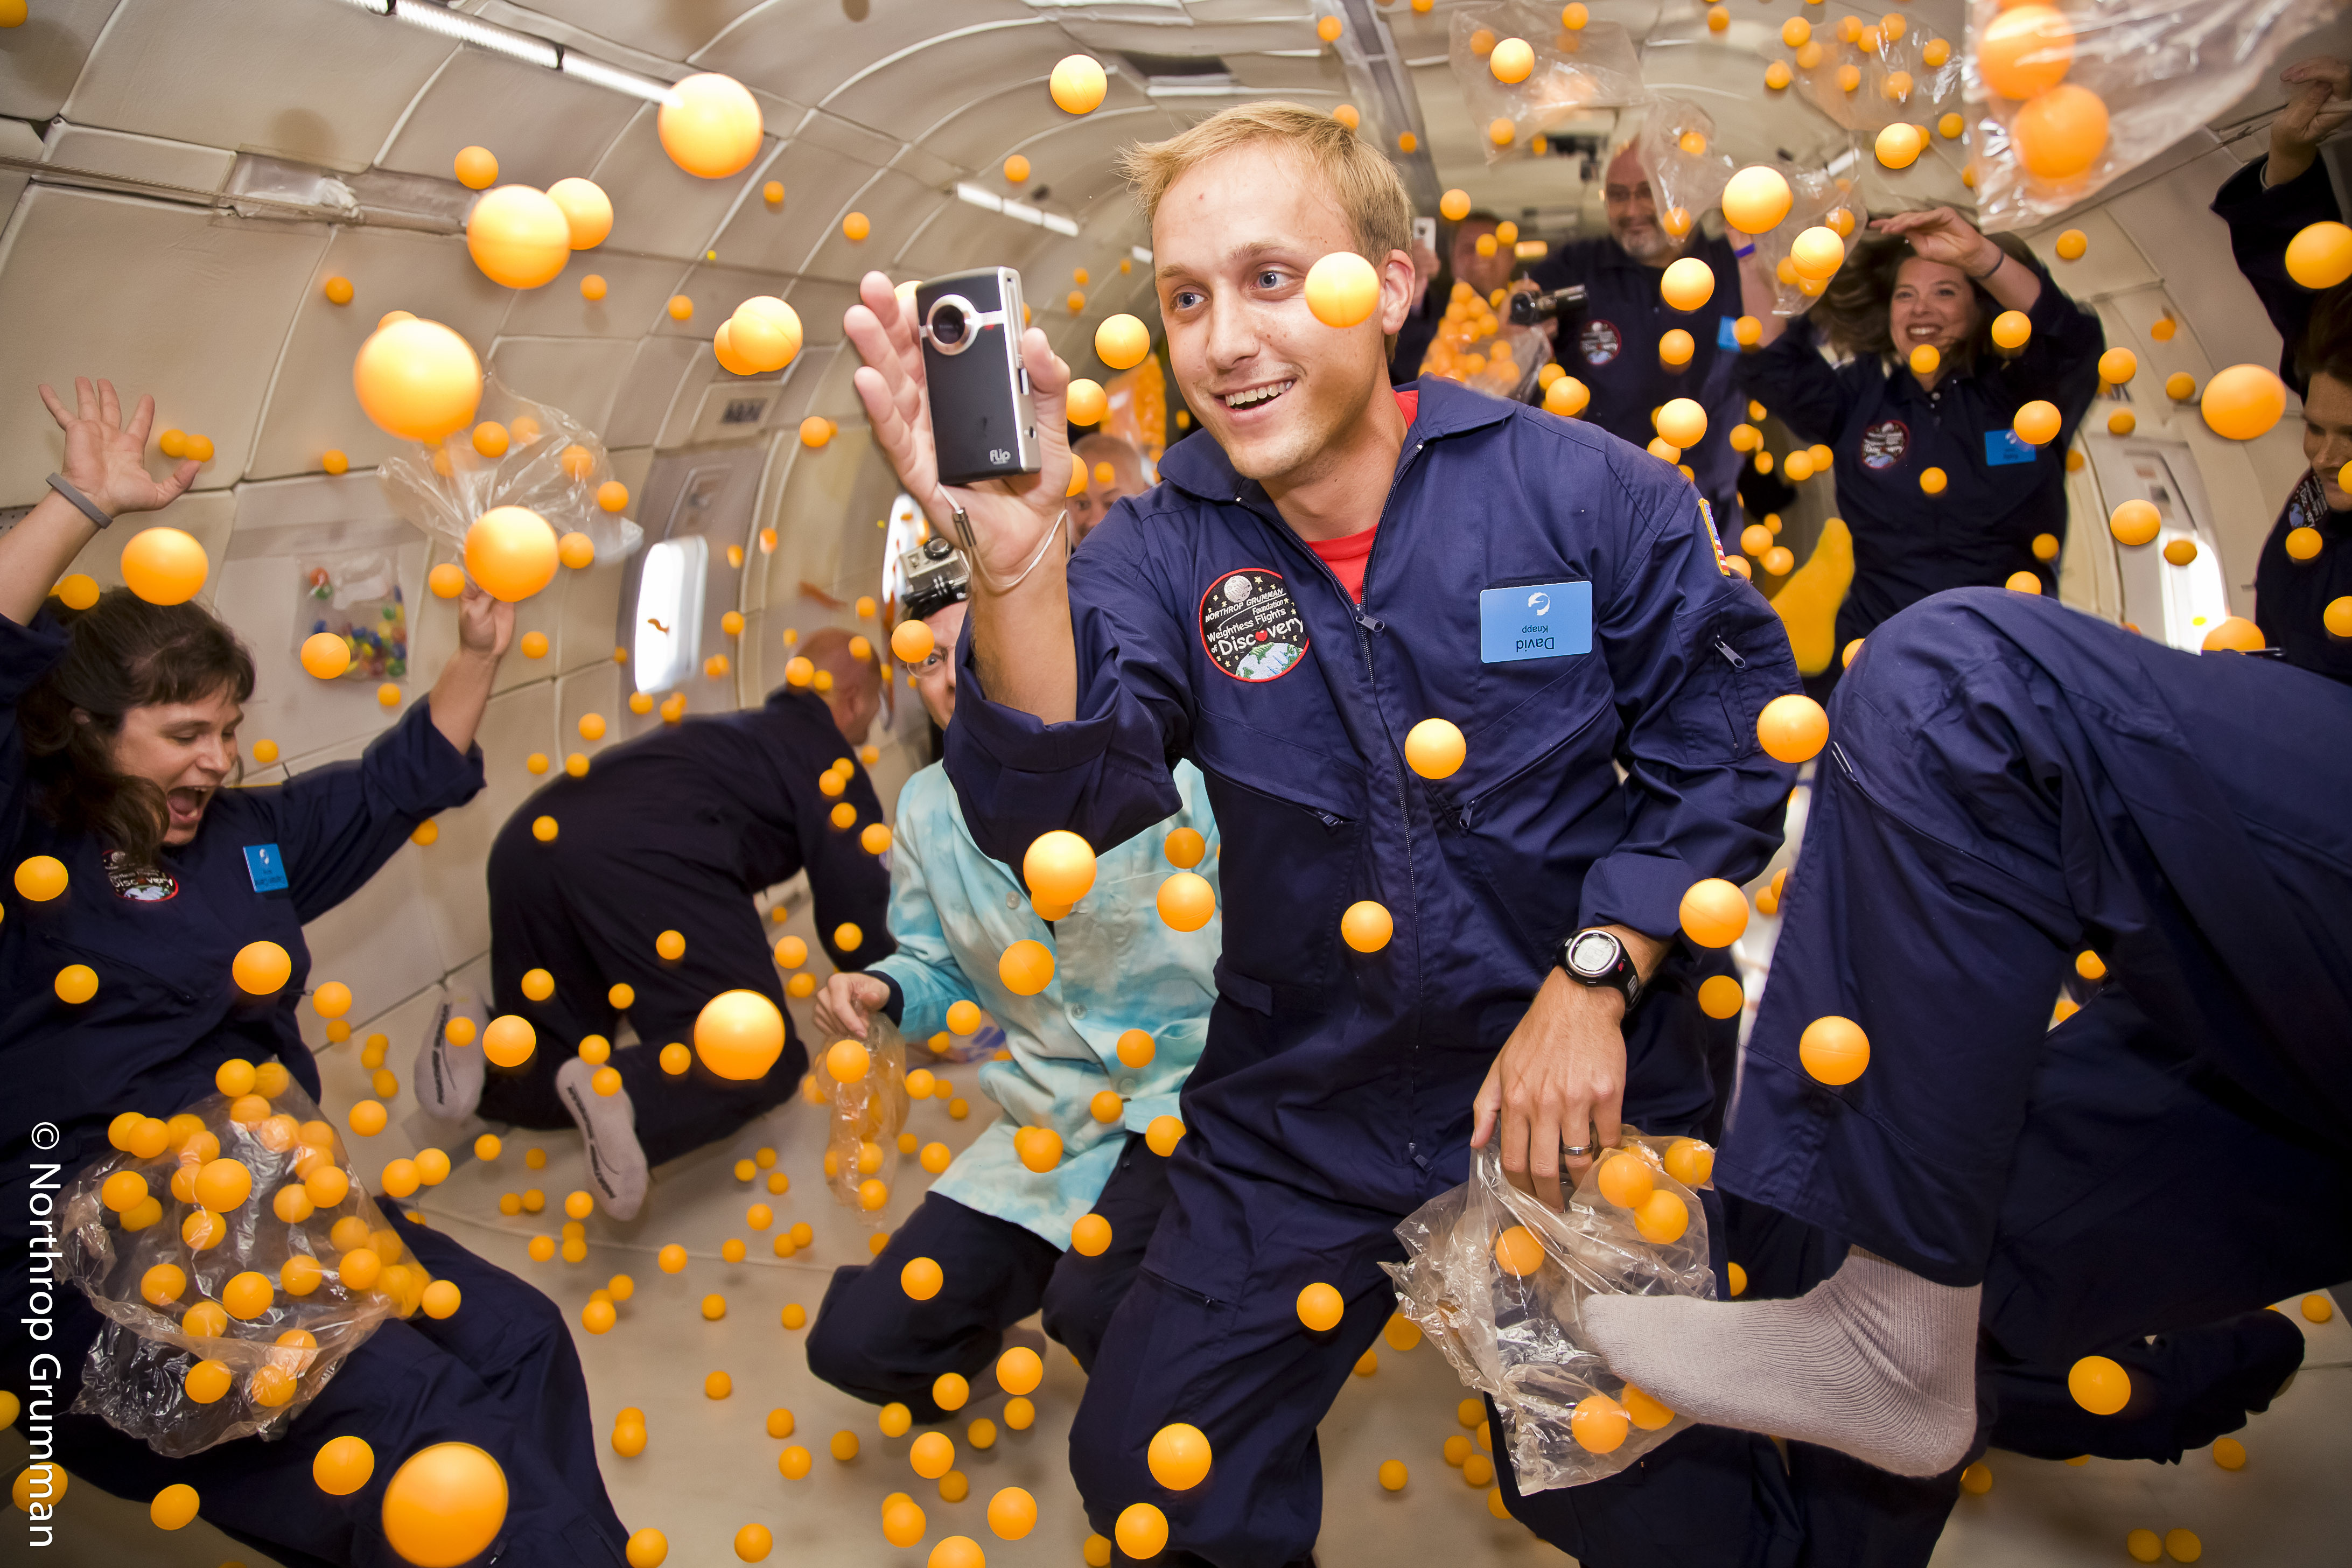 astronauts in space experience - photo #30